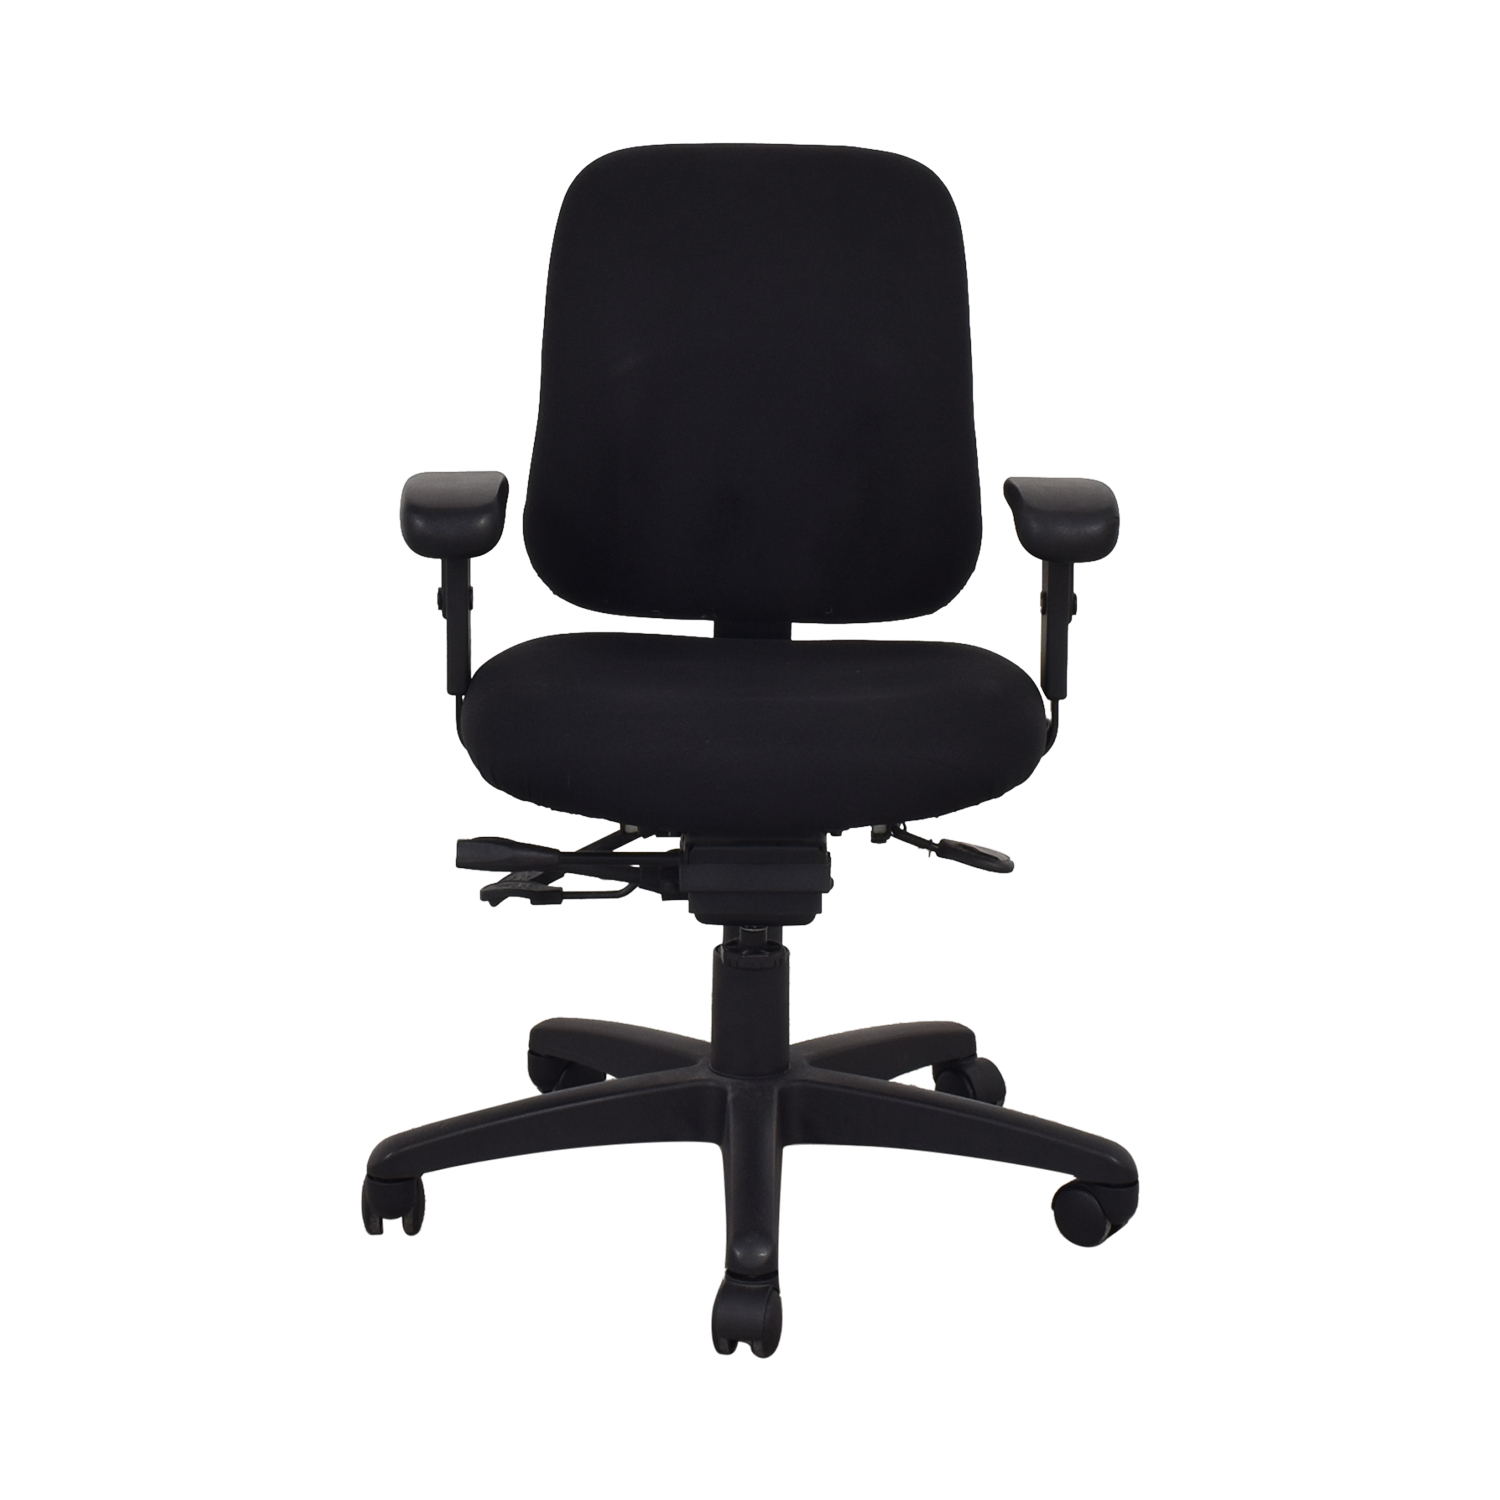 Office Master Office Master PT Value Economy Task Chair with Arms dimensions